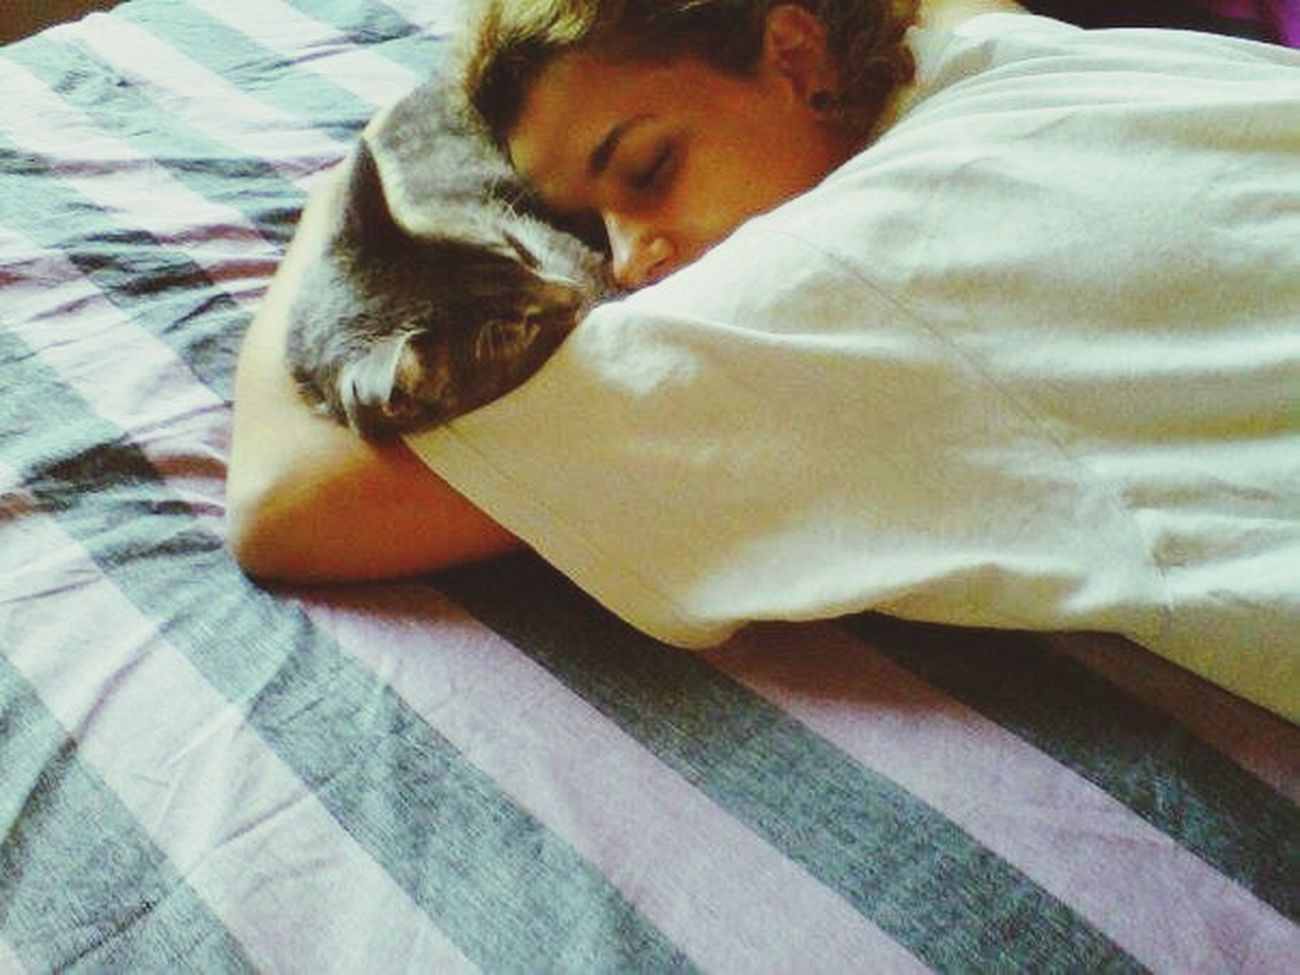 Love Girl Beautiful Girl Girlfriend Cat Cats Kitten Bed Love Chilling Enjoying Life Relaxing Green Sleeping Sleepy